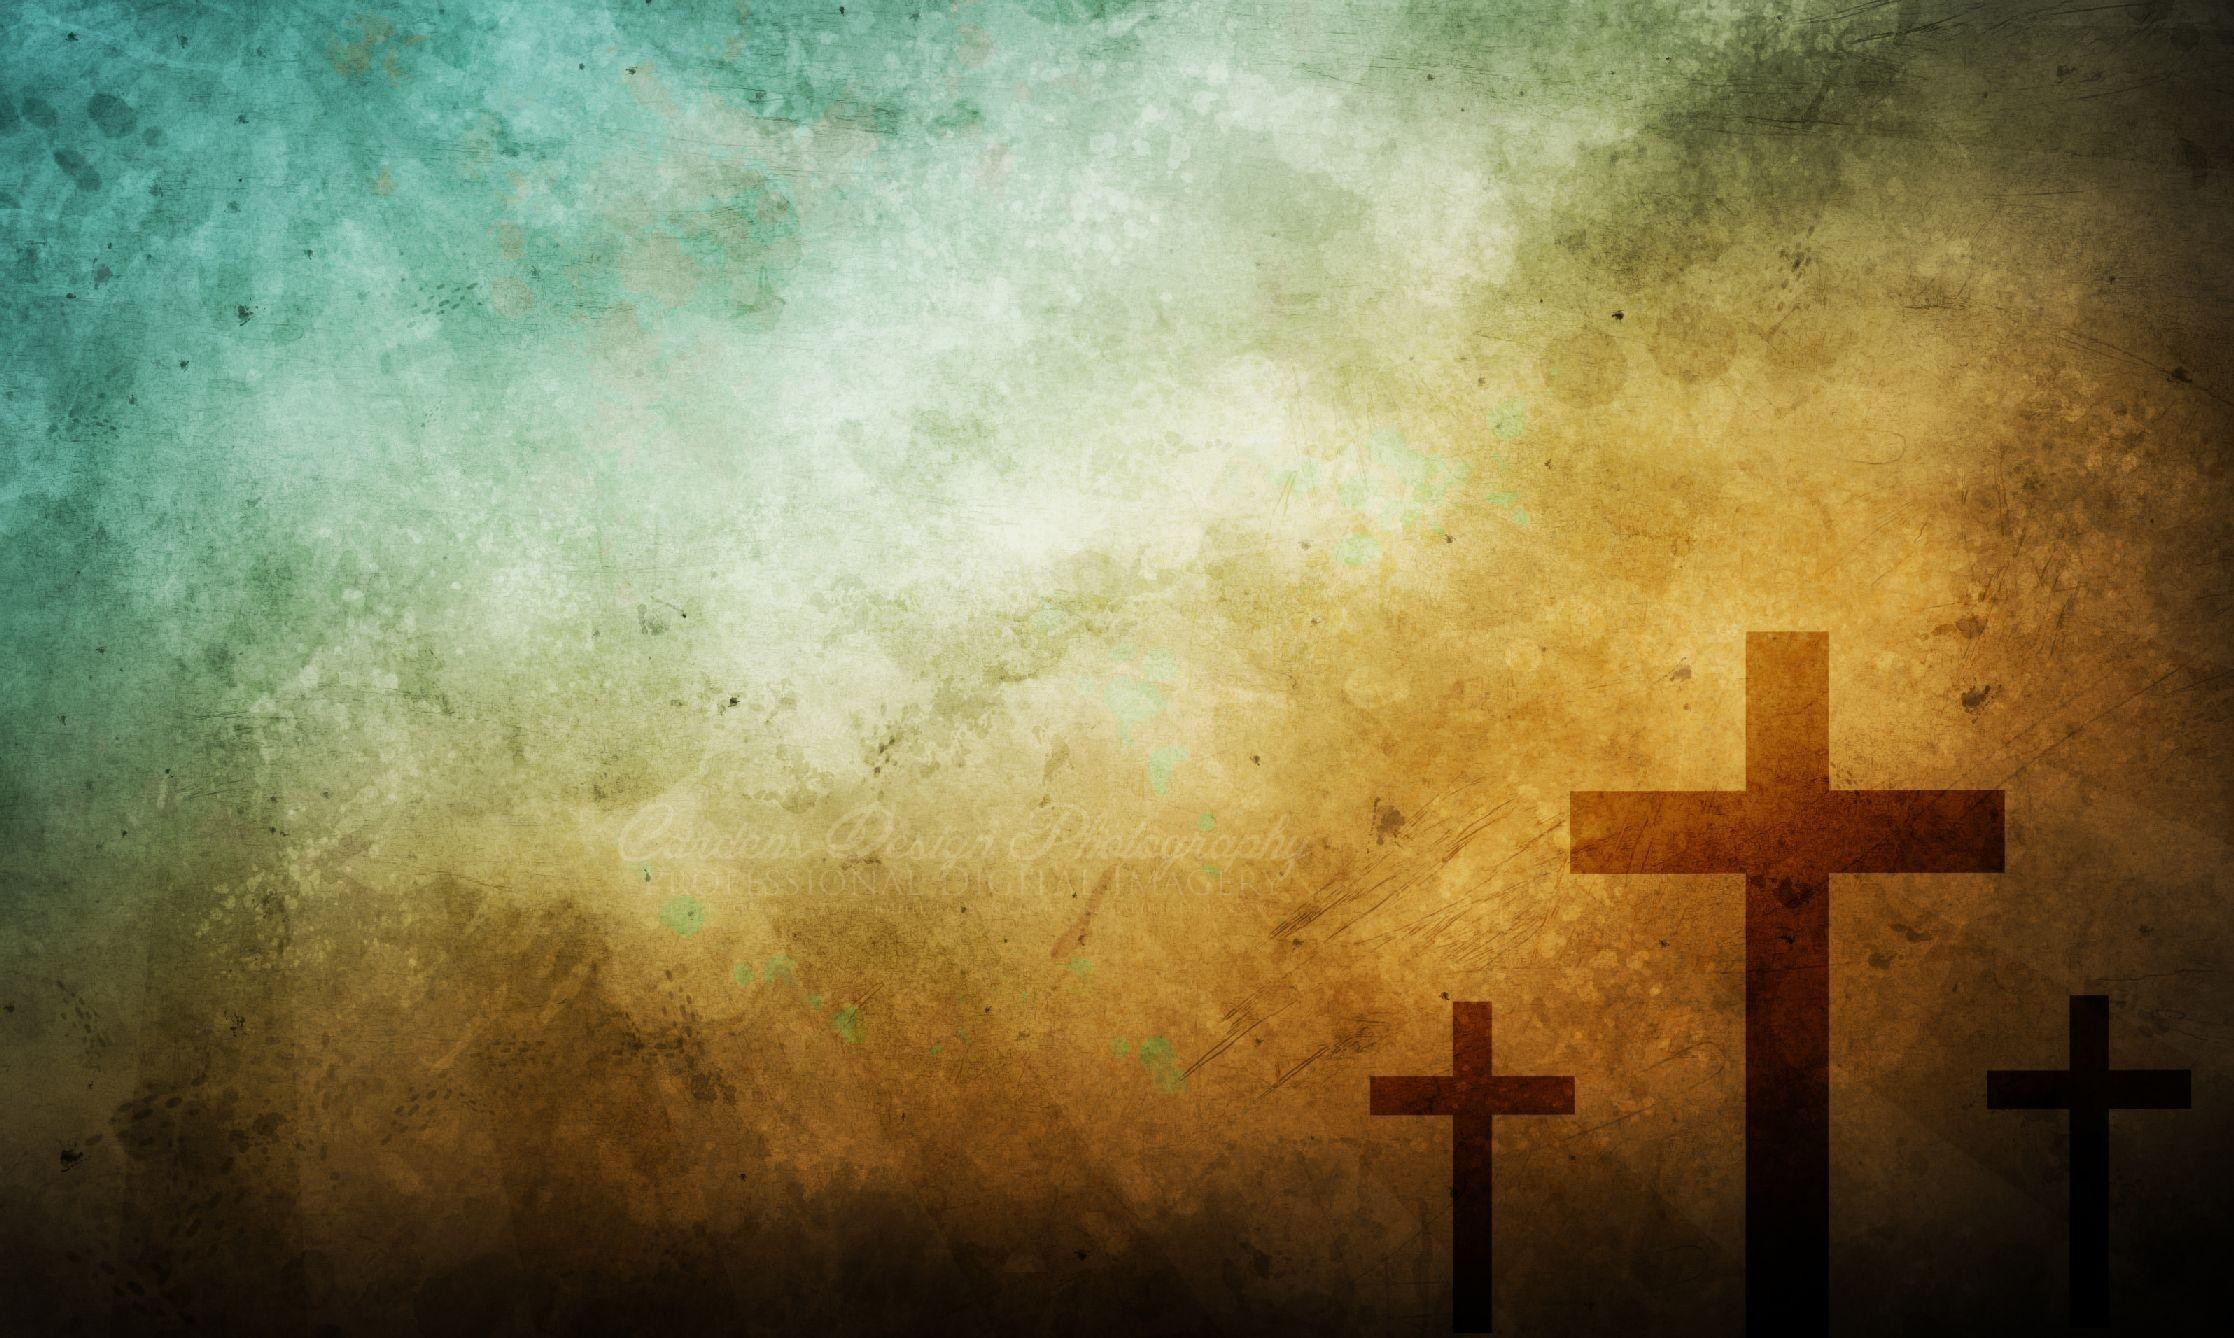 56 Religious Desktop Wallpapers on WallpaperPlay 2234x1338